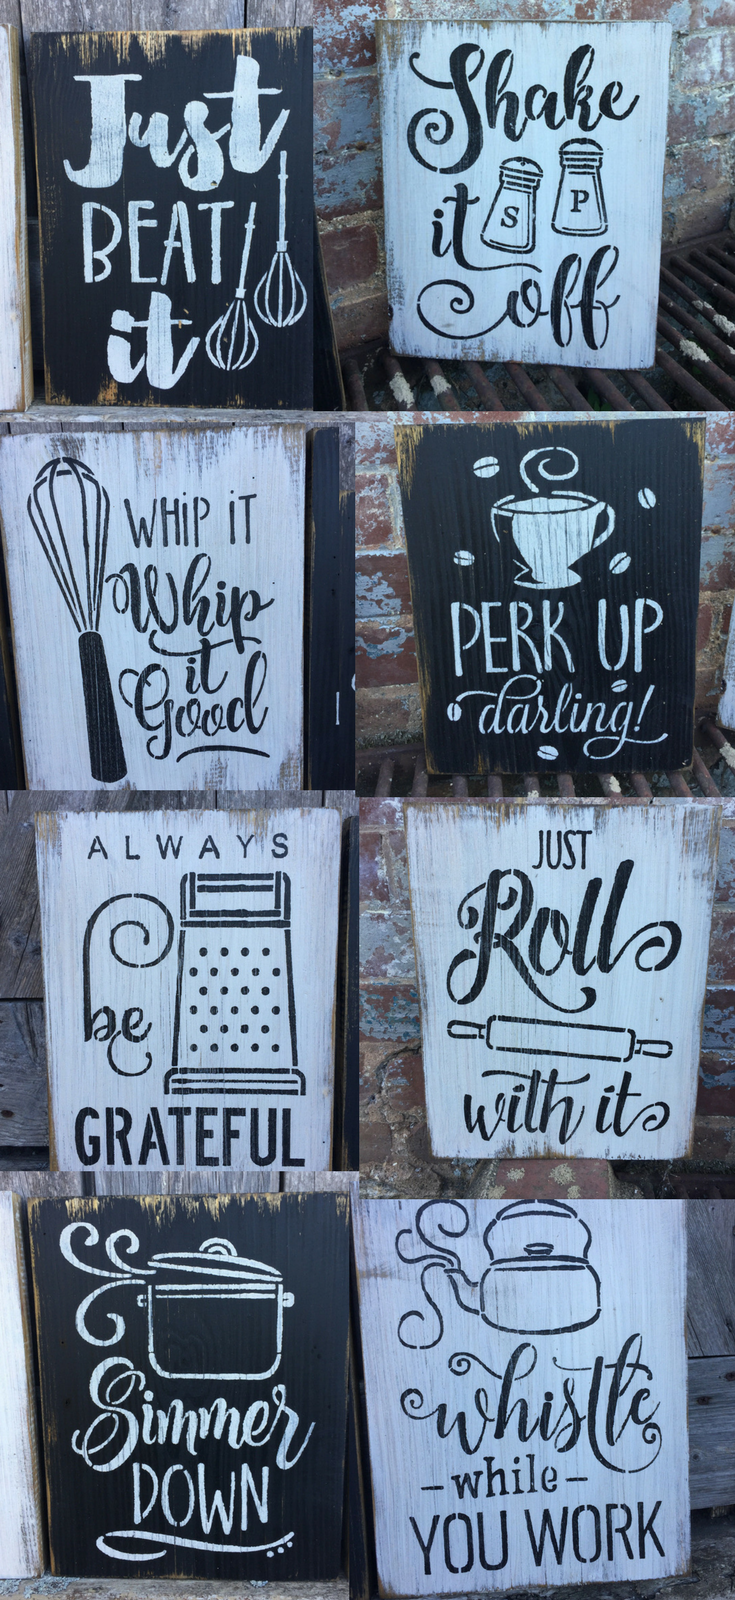 Details about Rustic Wood Signs - The Cute Kitchen Collection - 10 ...